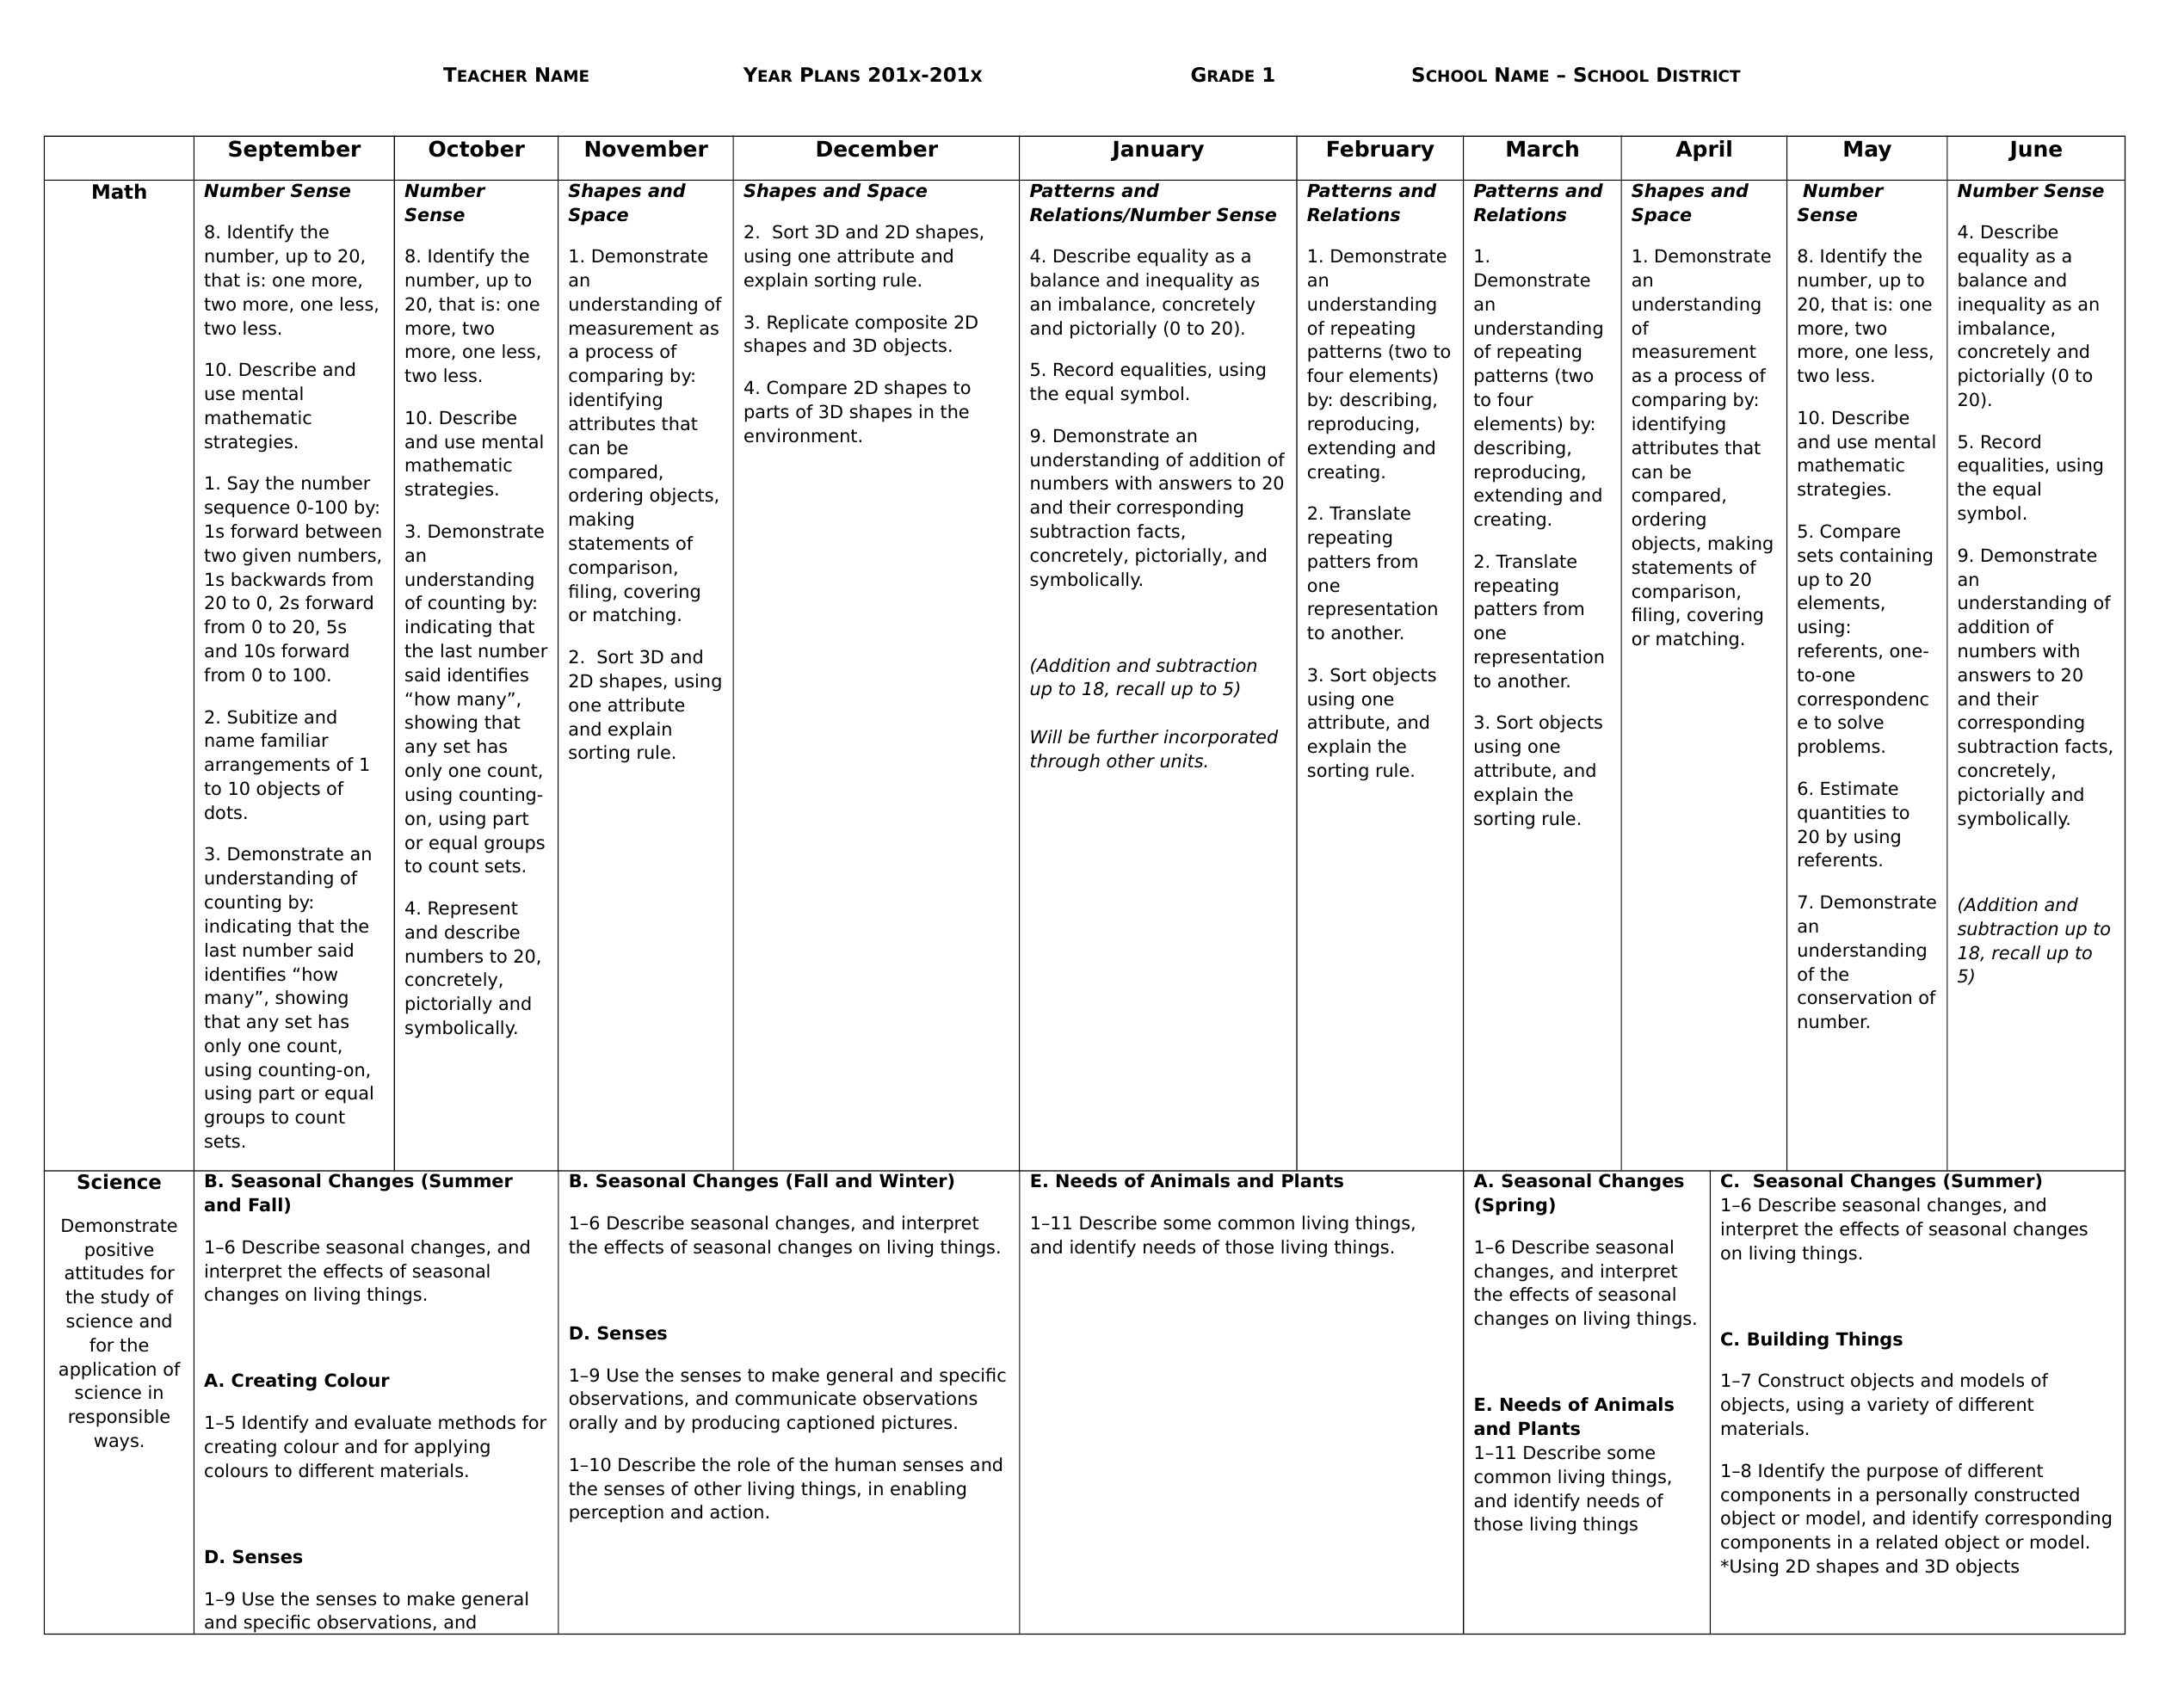 Grade 1 Long Range Year Plan Resource Preview